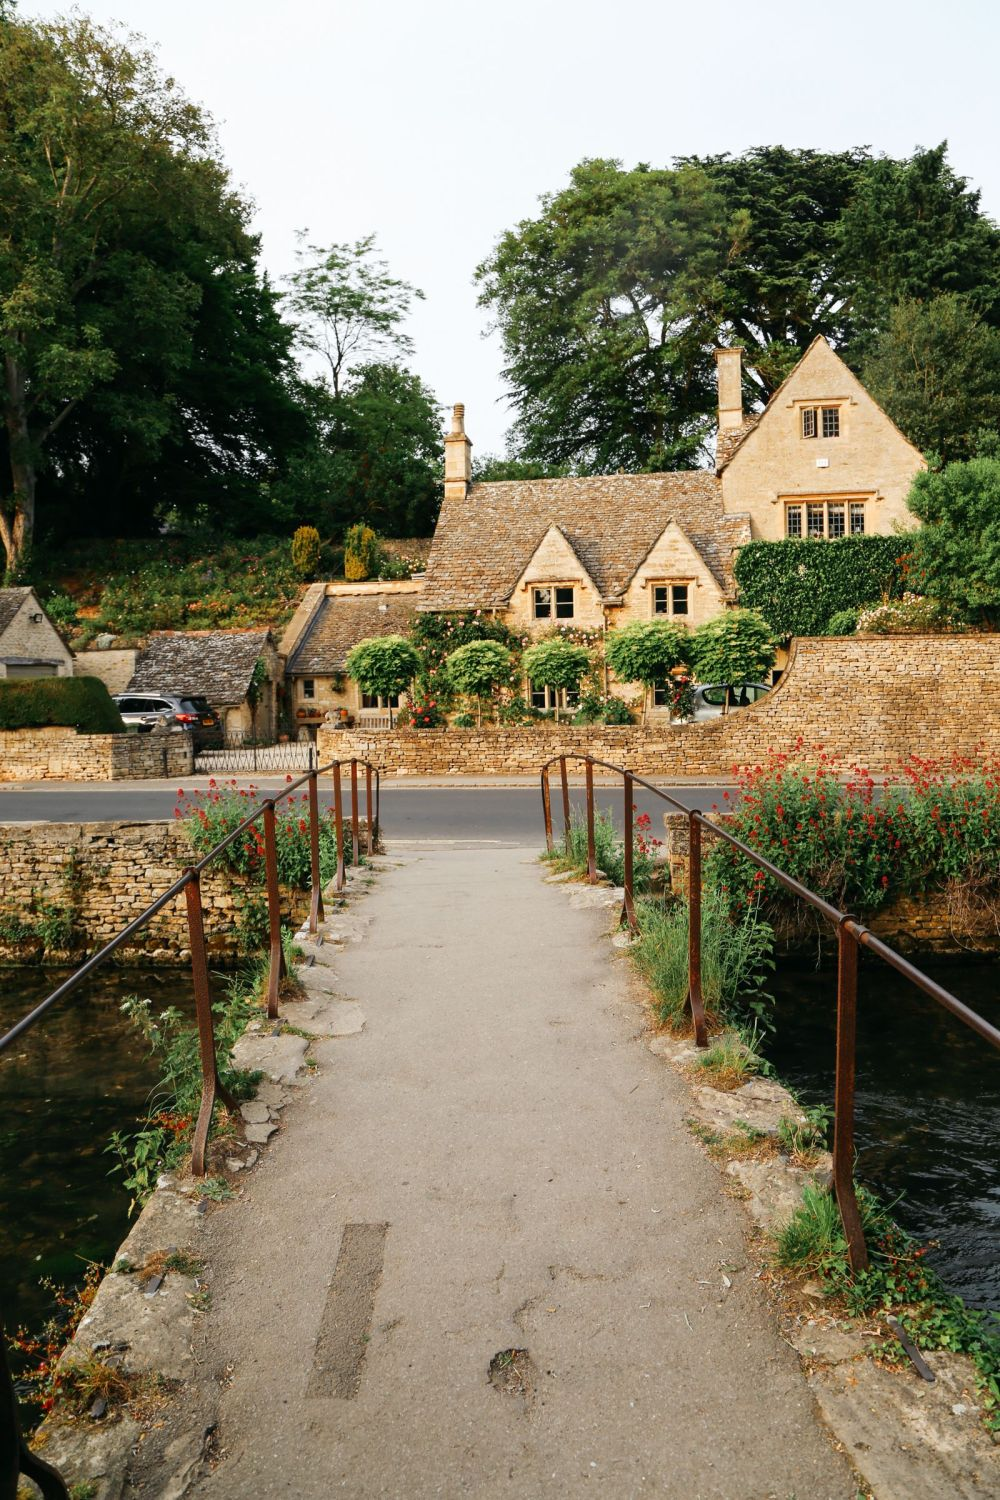 In Search Of The Most Beautiful Street In England - Arlington Row, Bibury (29)